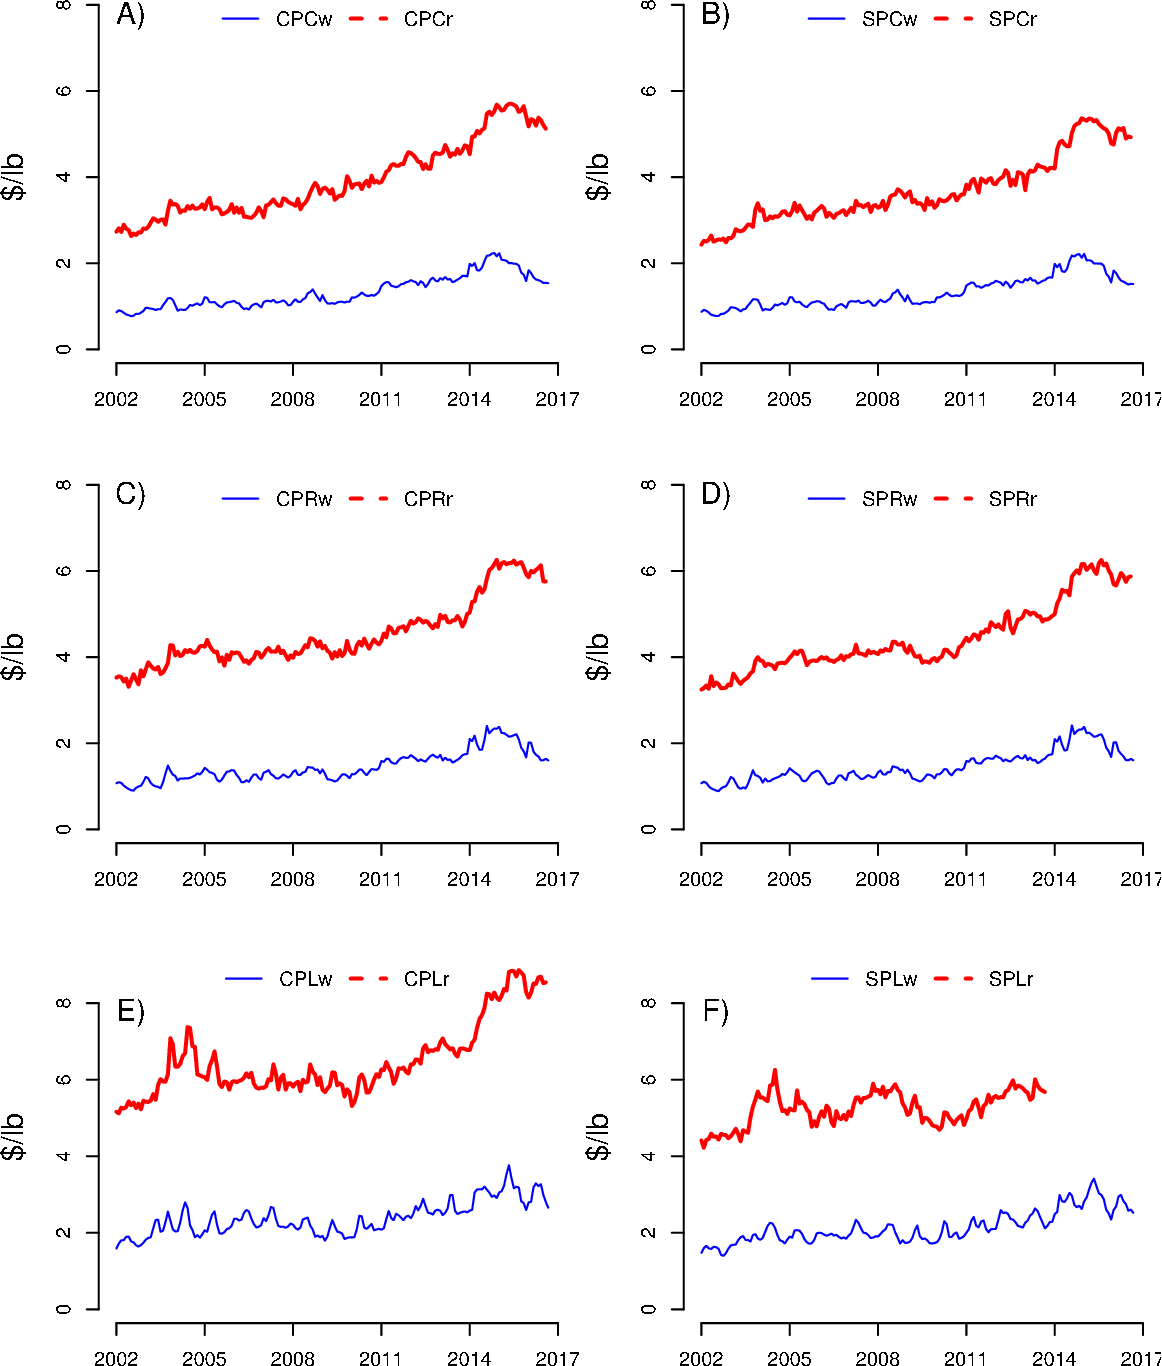 Vertical price relationships between different cuts and